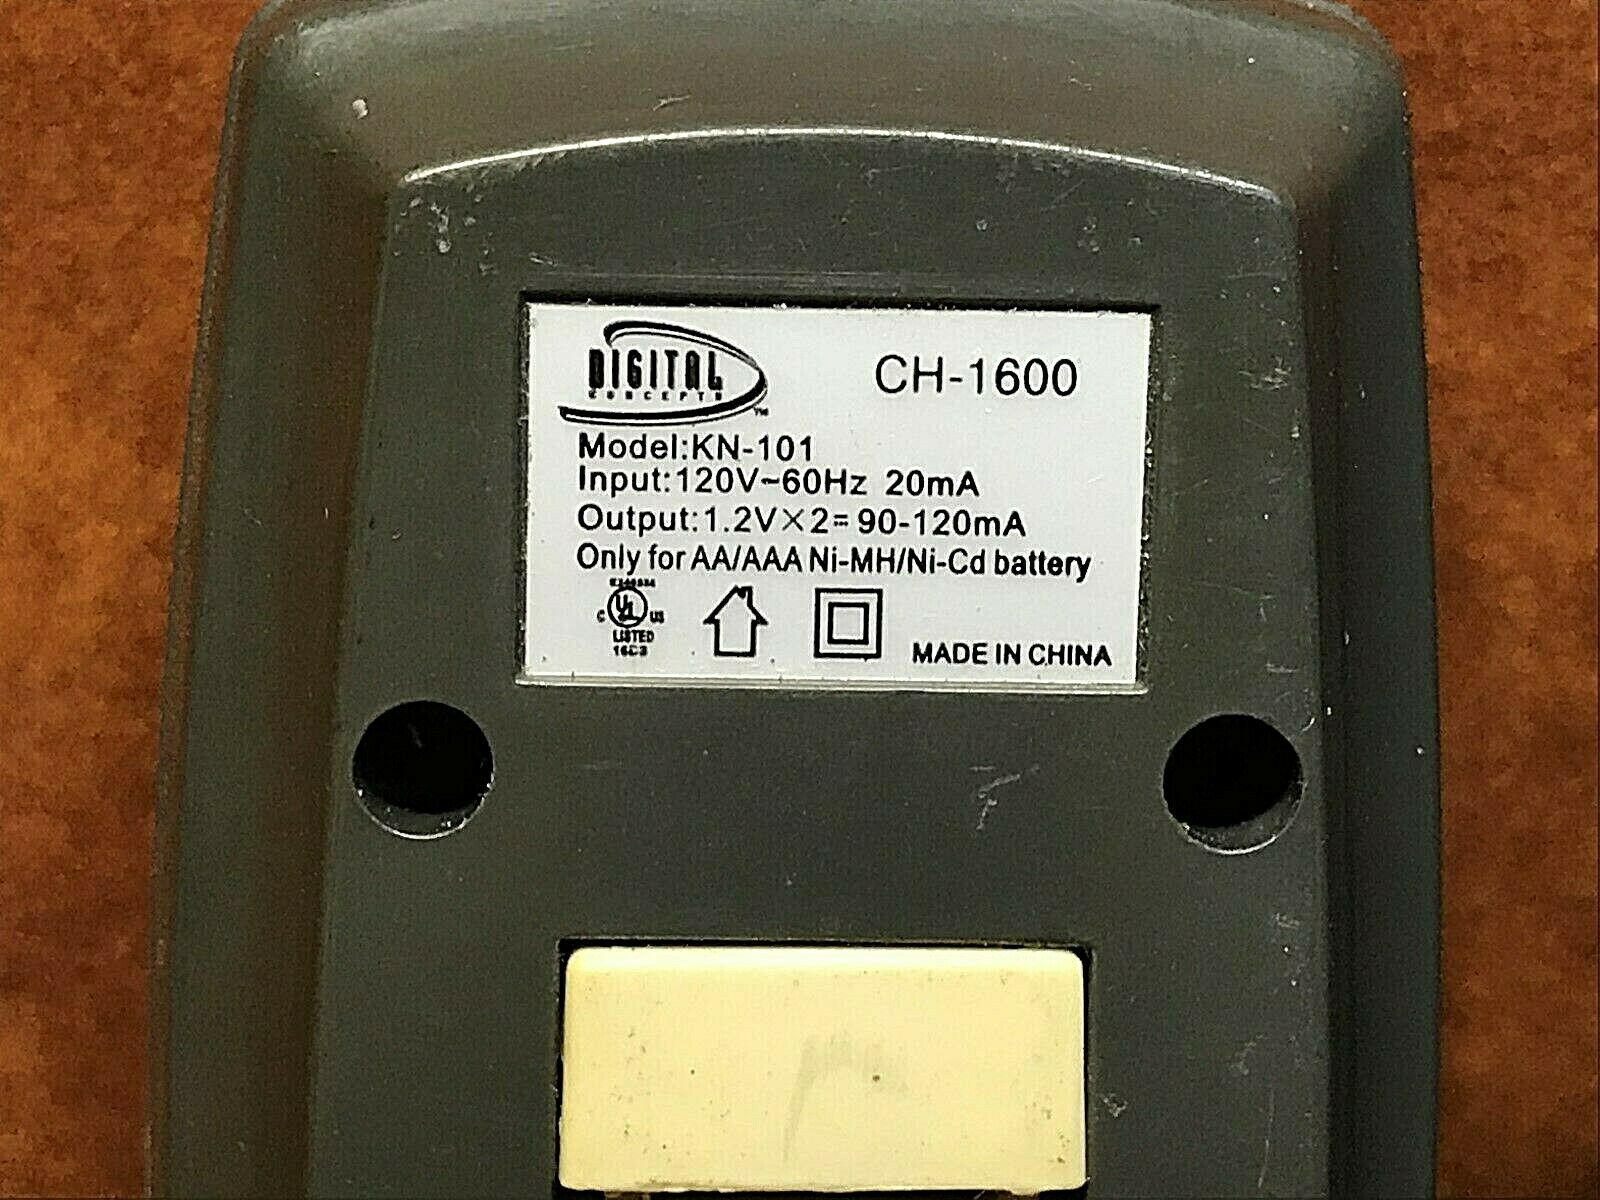 (2) DIGITAL CONCEPTS Compact Travel Battery Chargers AA/AAA Ni-Cd ~ CH-1600's